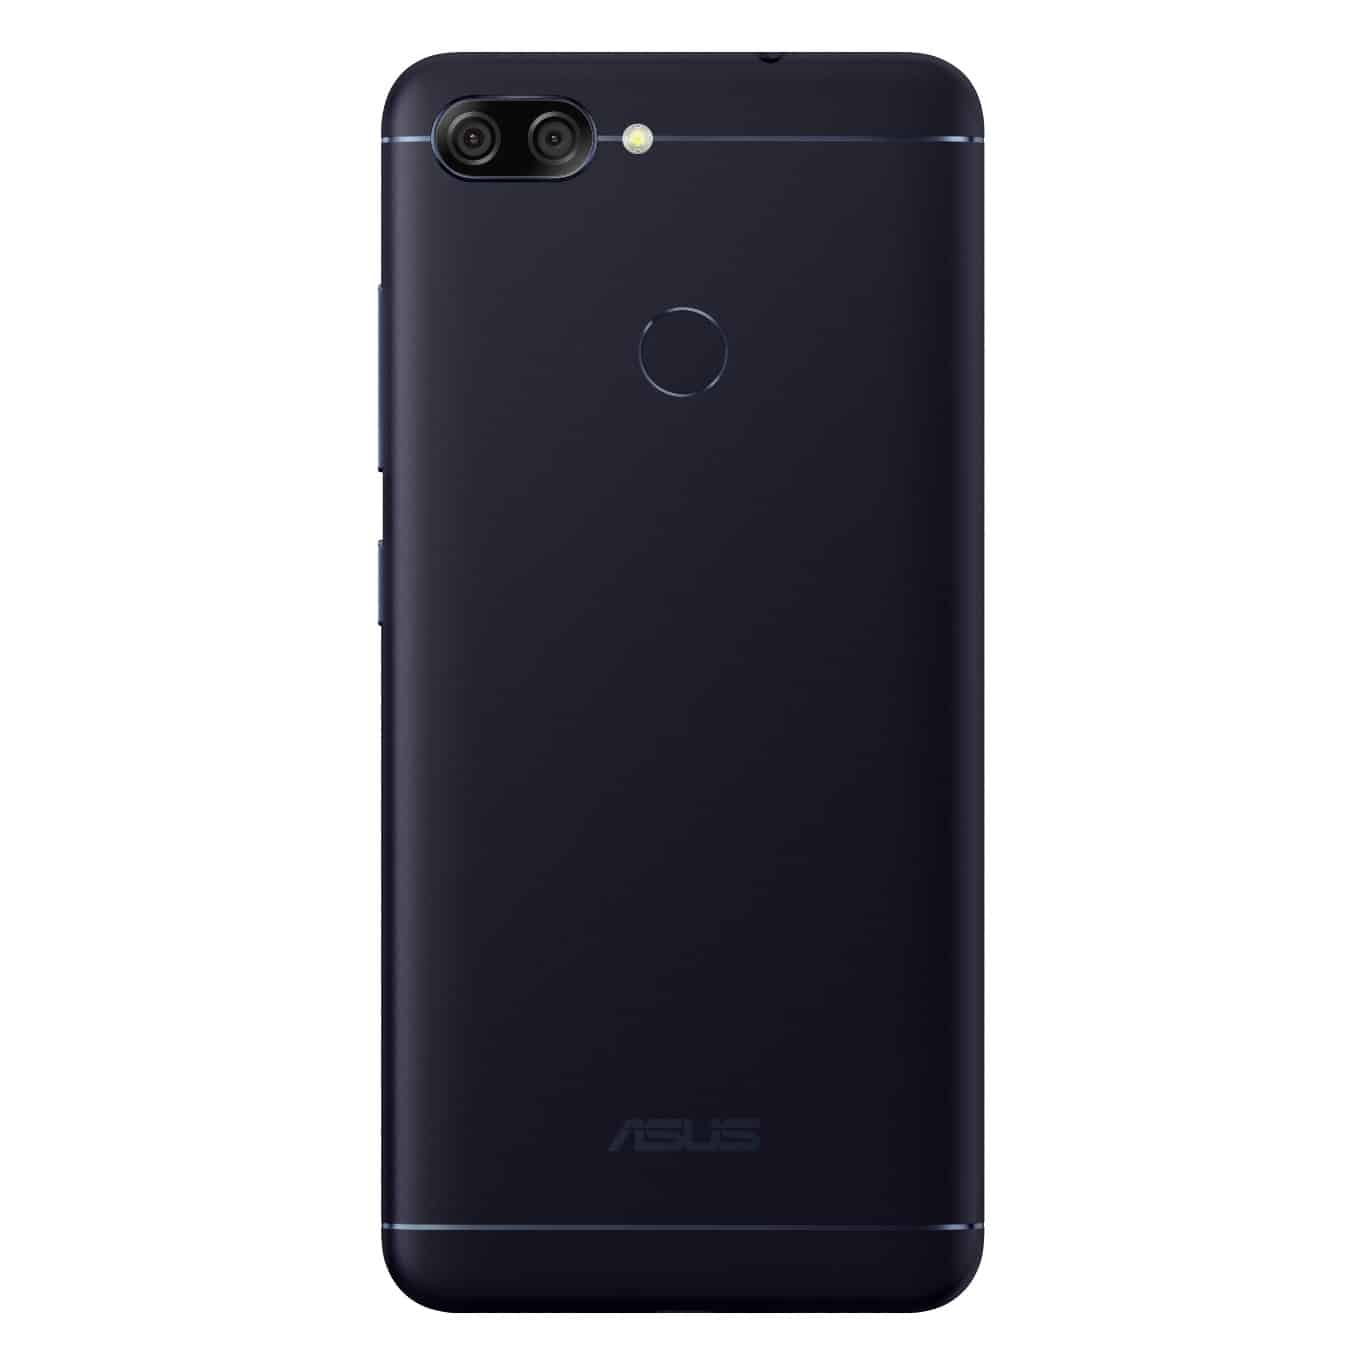 ASUS ZenFone Max Plus M1 official image 5